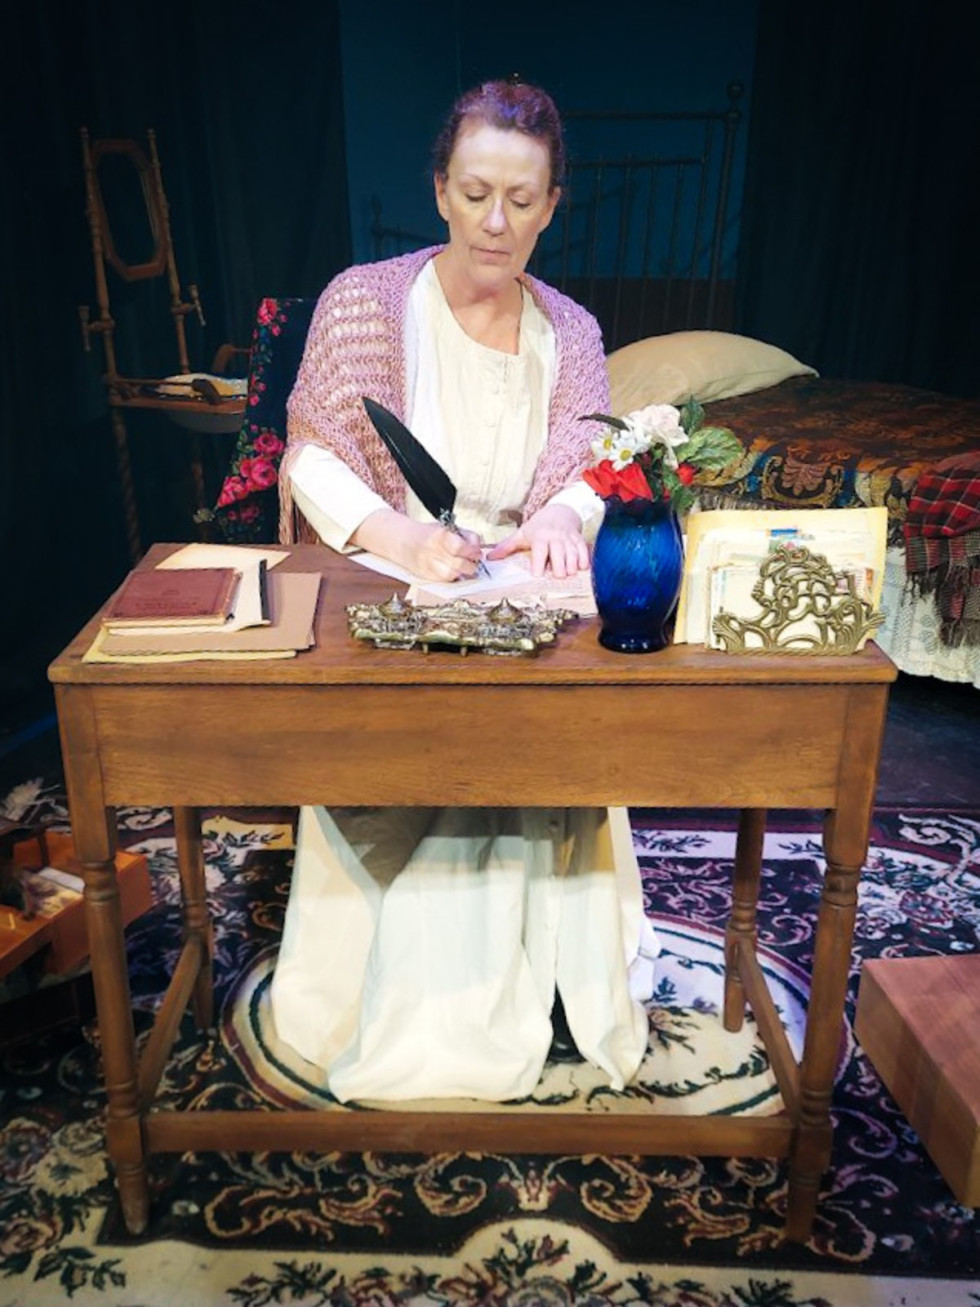 Mesquite Arts Theatre presents The Belle of Amherst